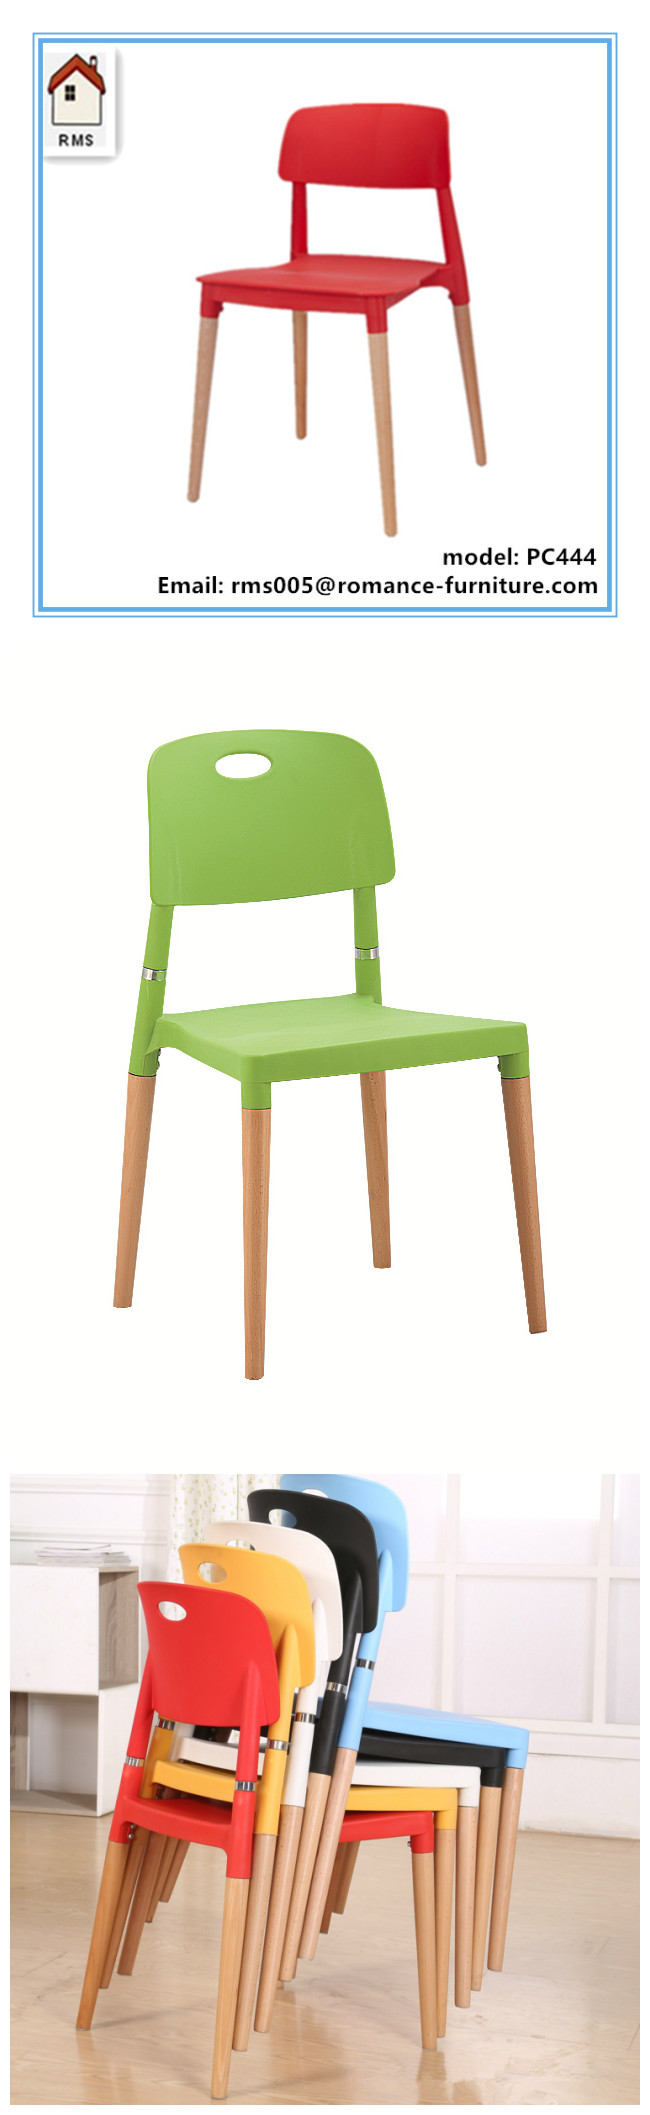 colorful plastic chairs wood legs plastic chair for sale PC444